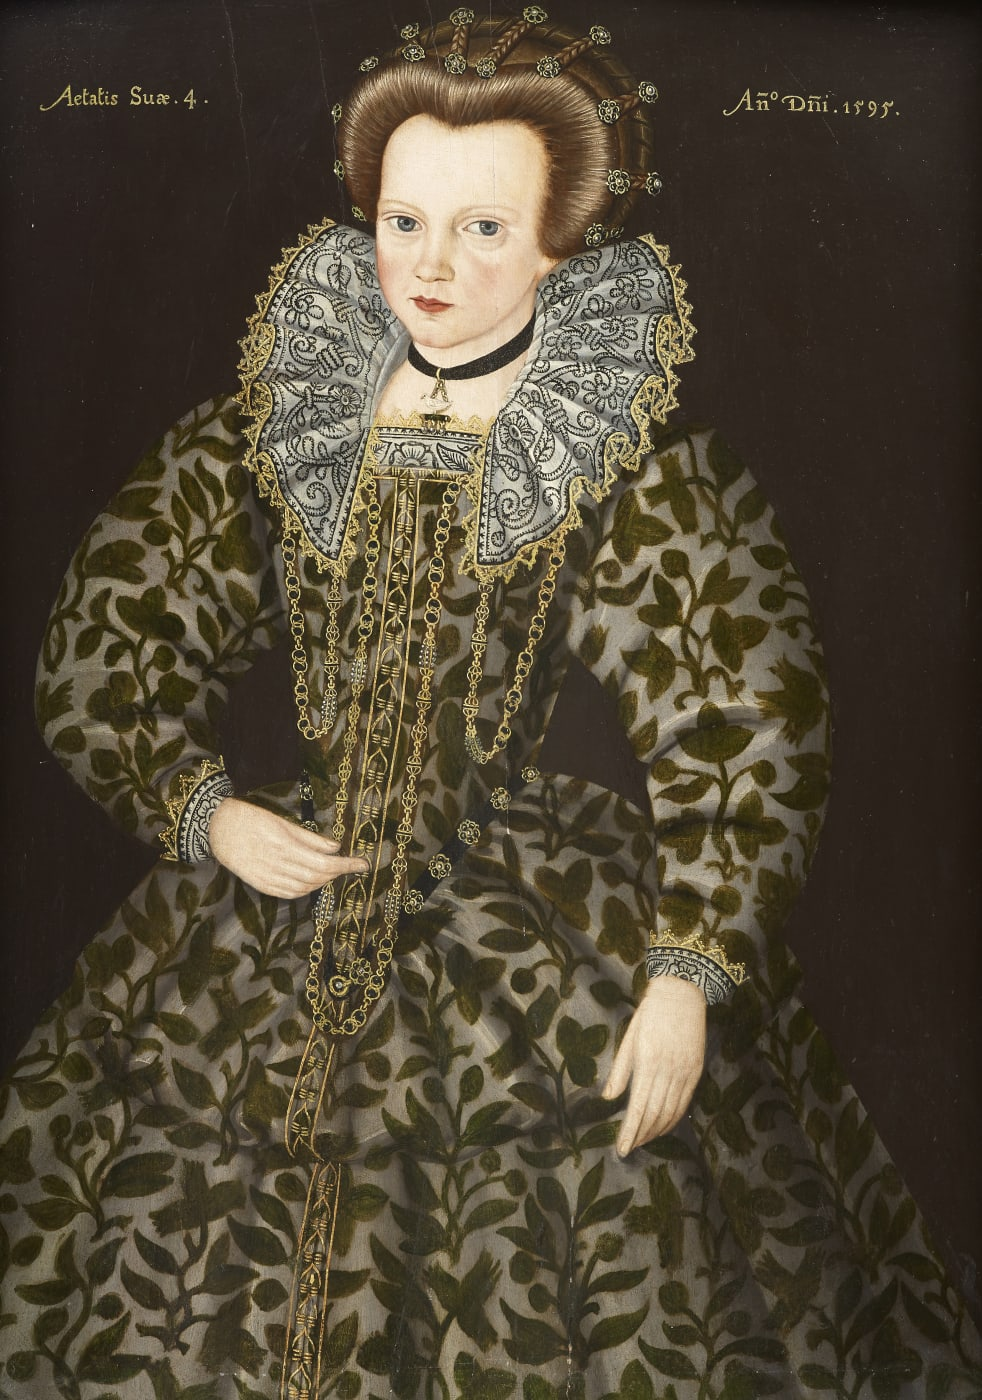 Young Girl Aged 3 Follower of Hieronimo Custodis